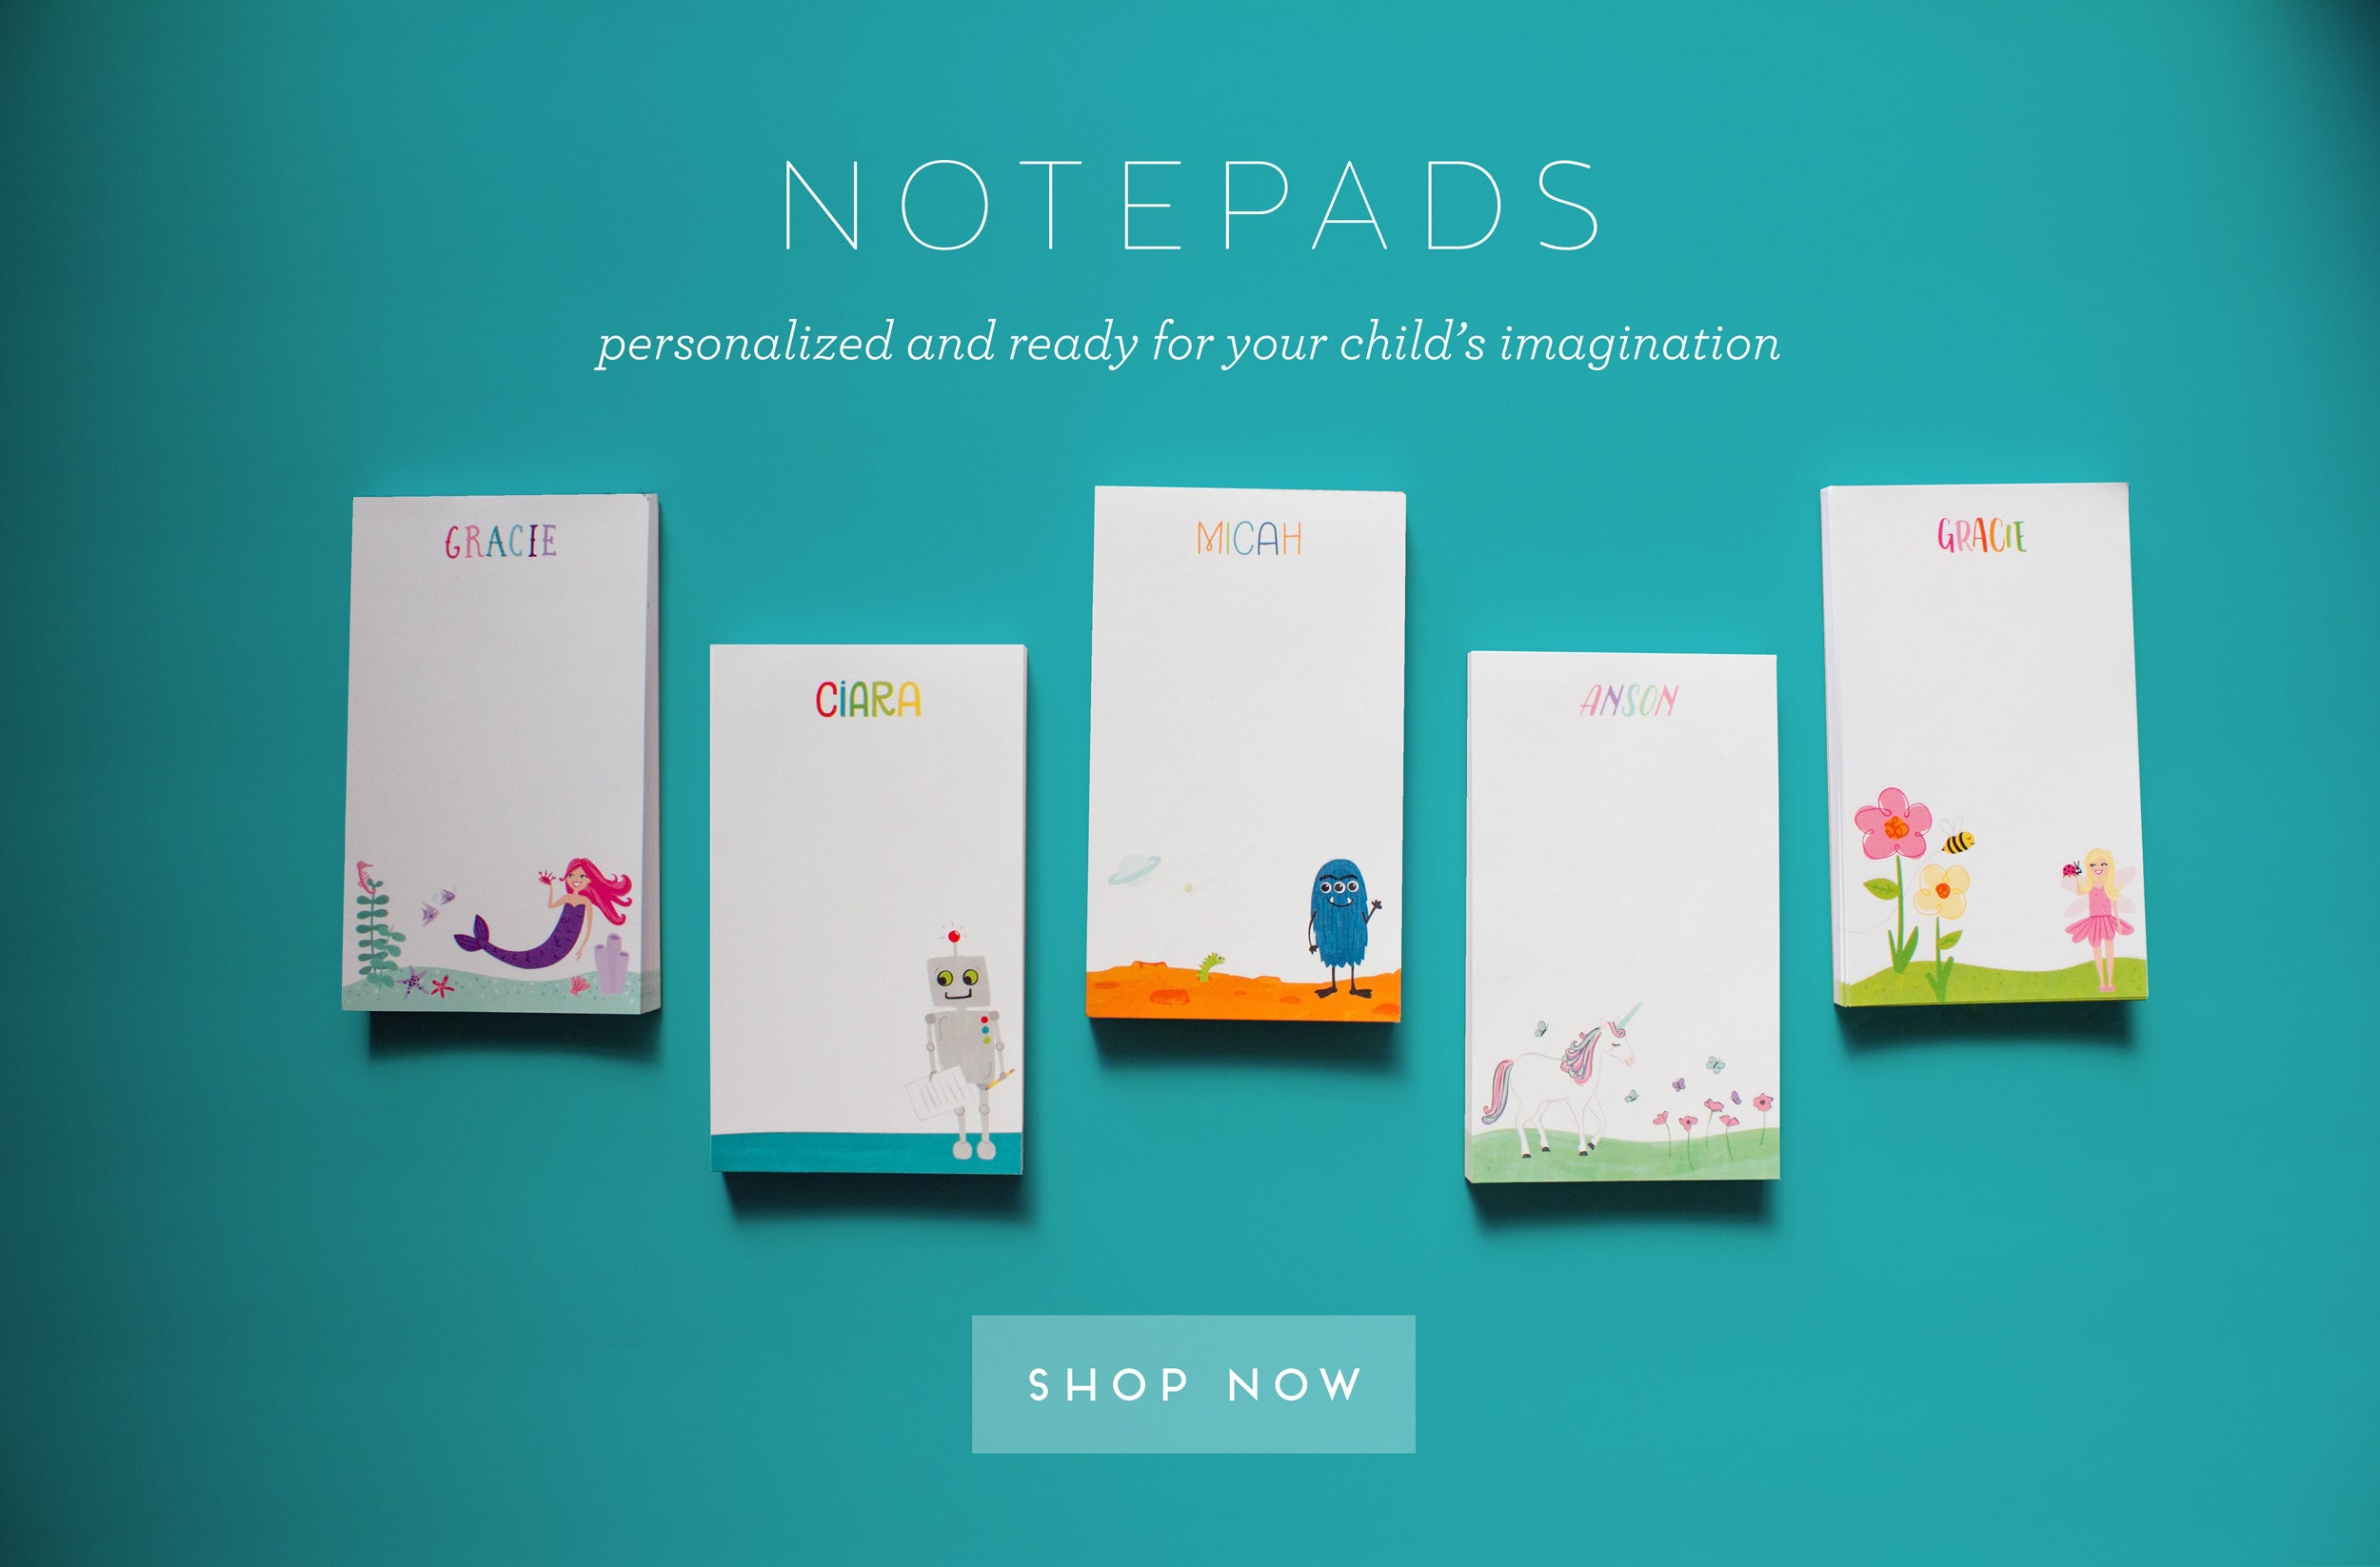 Notepads - Personalized and ready for your child's imagination - Shop Now